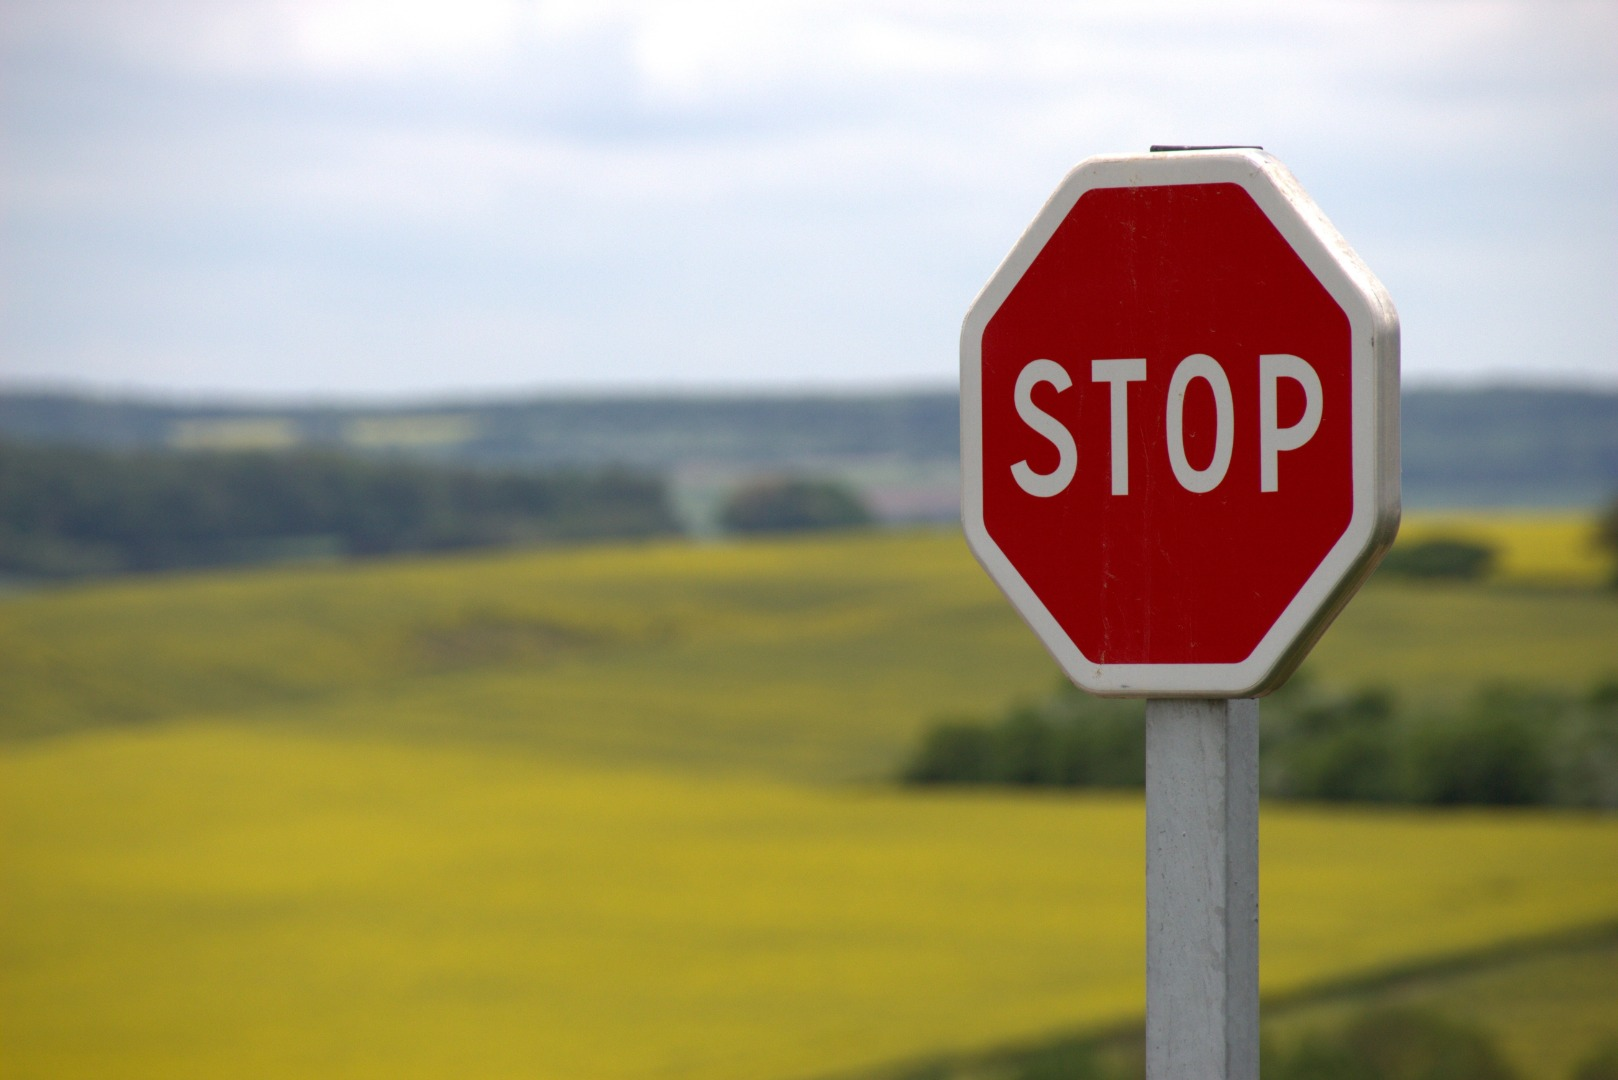 Stop shield traffic sign road sign 39080